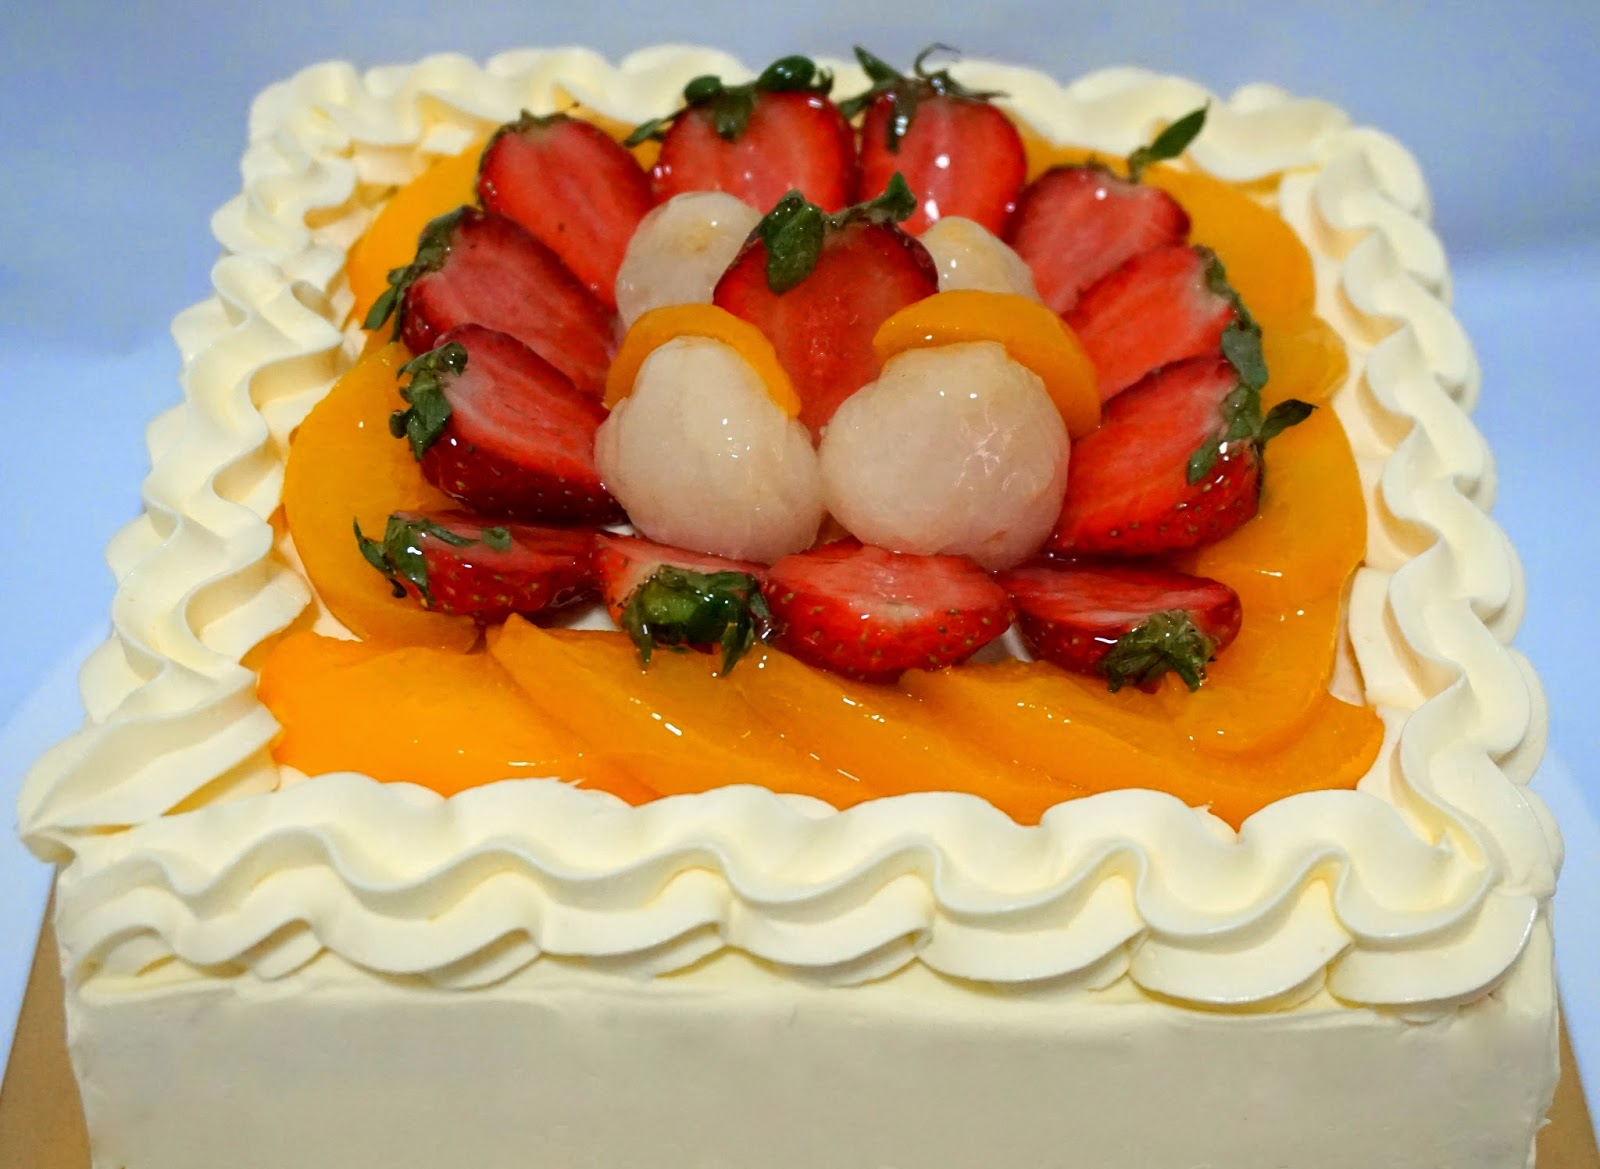 Sherbakes: Assorted Fruits Rainbow Cake